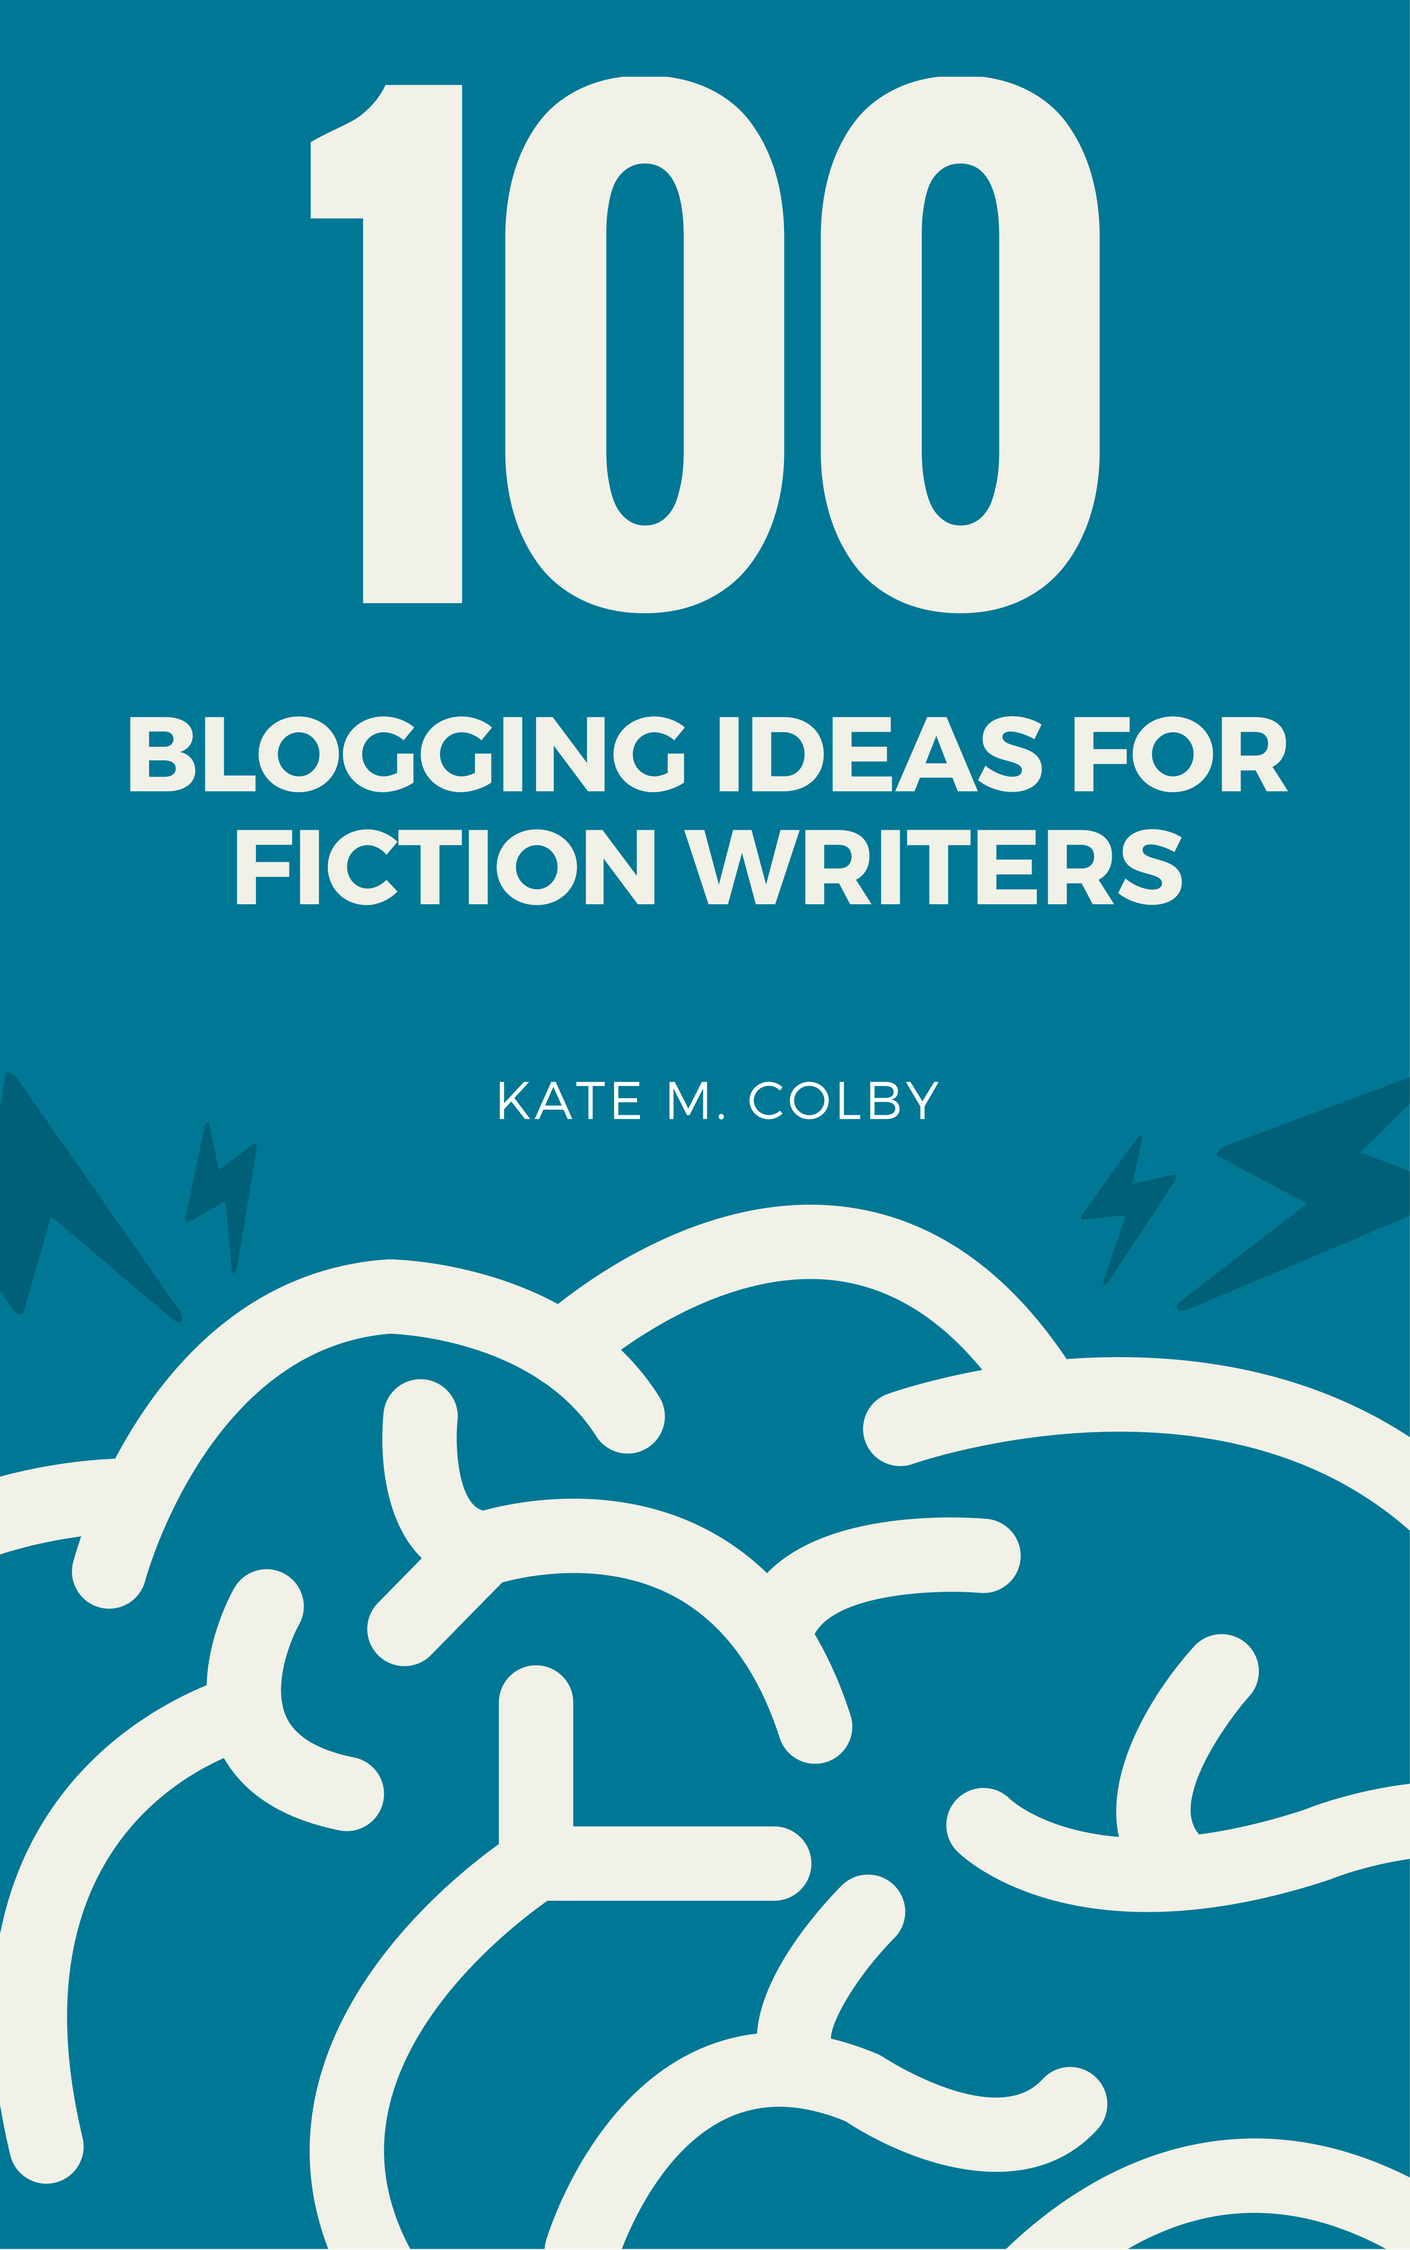 100 Blogging Ideas for Fiction Writers